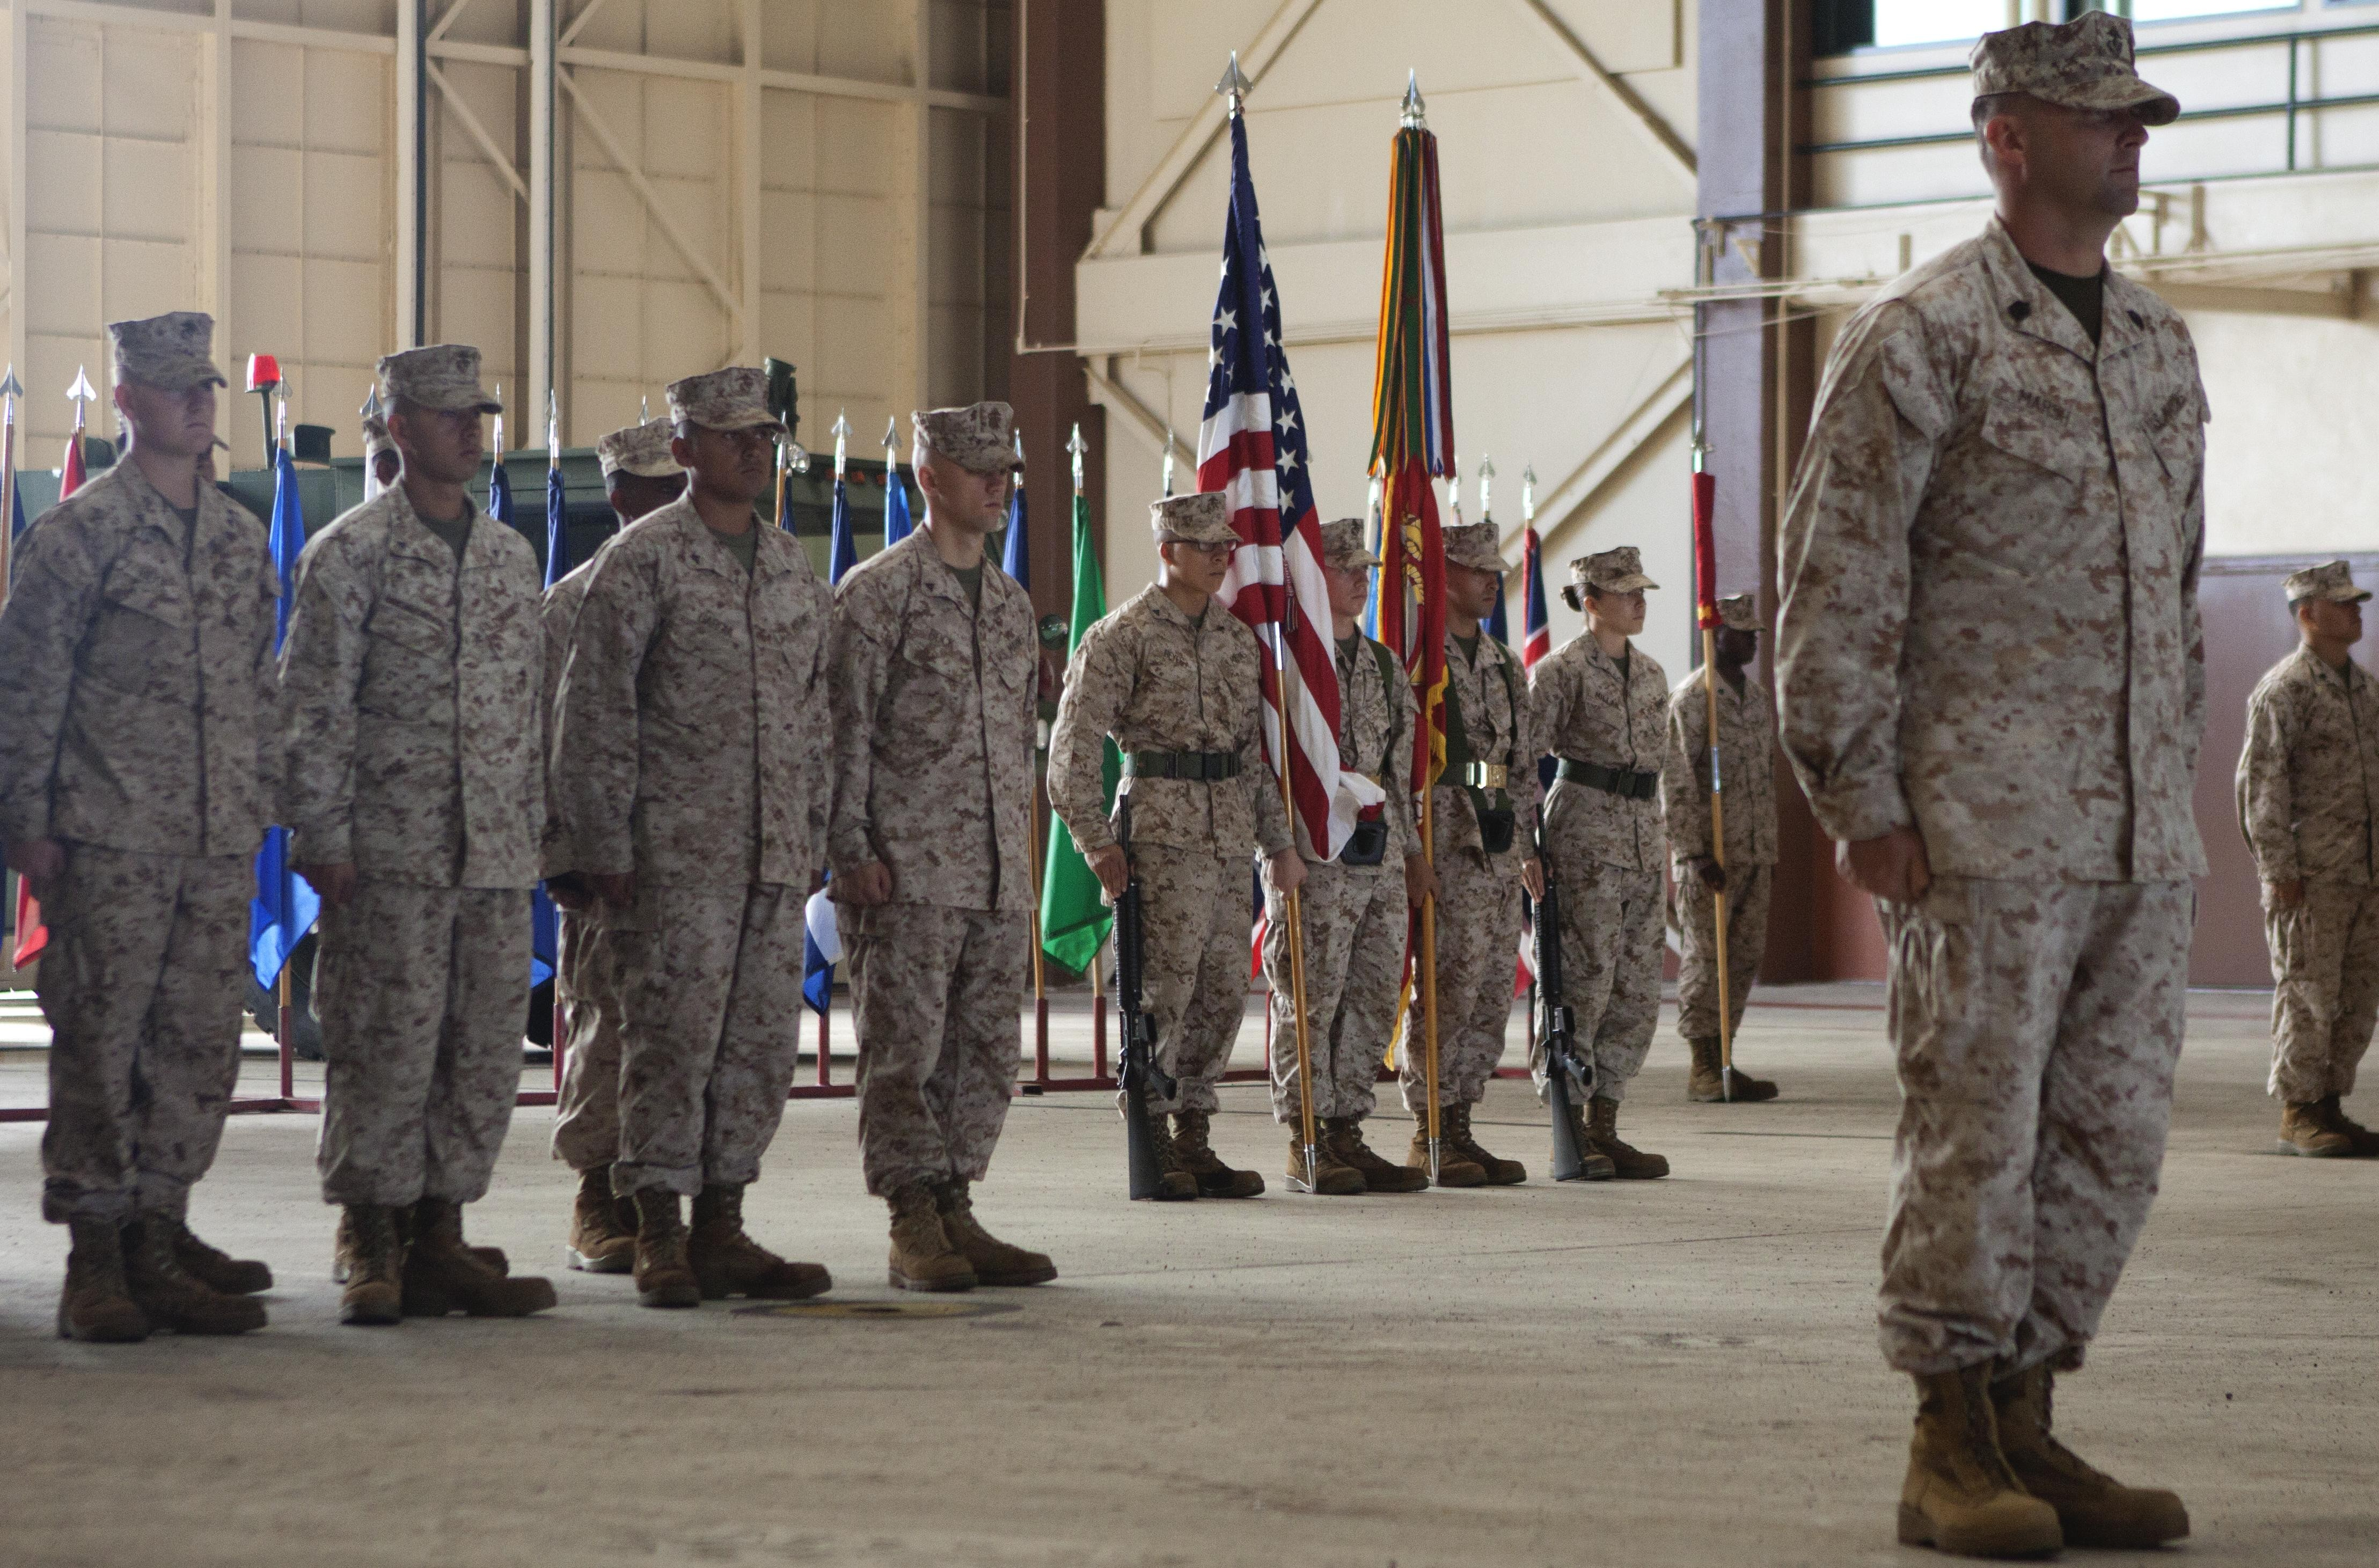 Mwsd Is Official Fully Operational Marine Corps Base Hawaii JPG 4433x2922 Abbreviation For Lance Corporal Marines